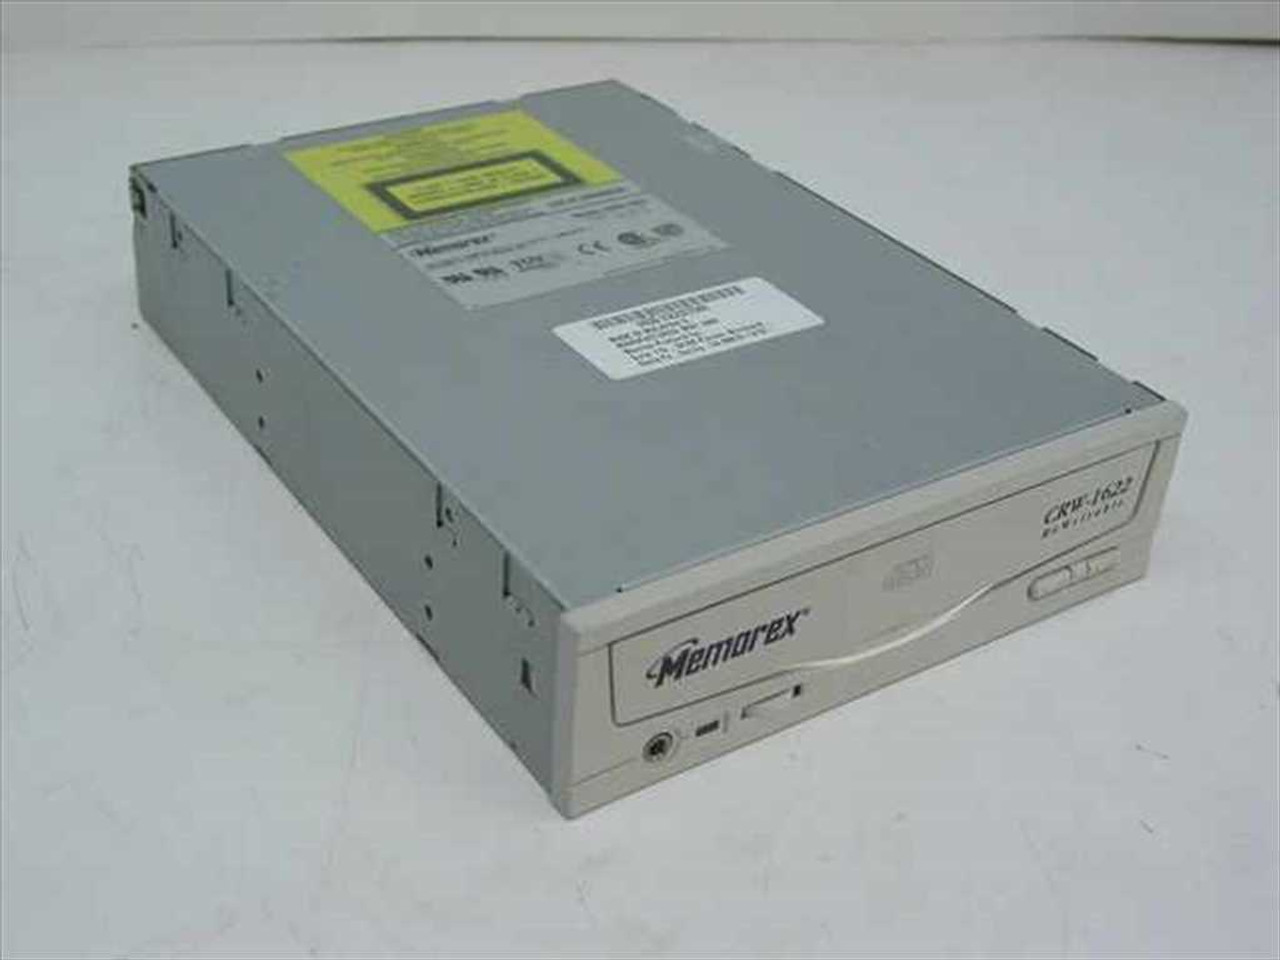 MEMOREX 52MAXX DRIVERS FOR PC